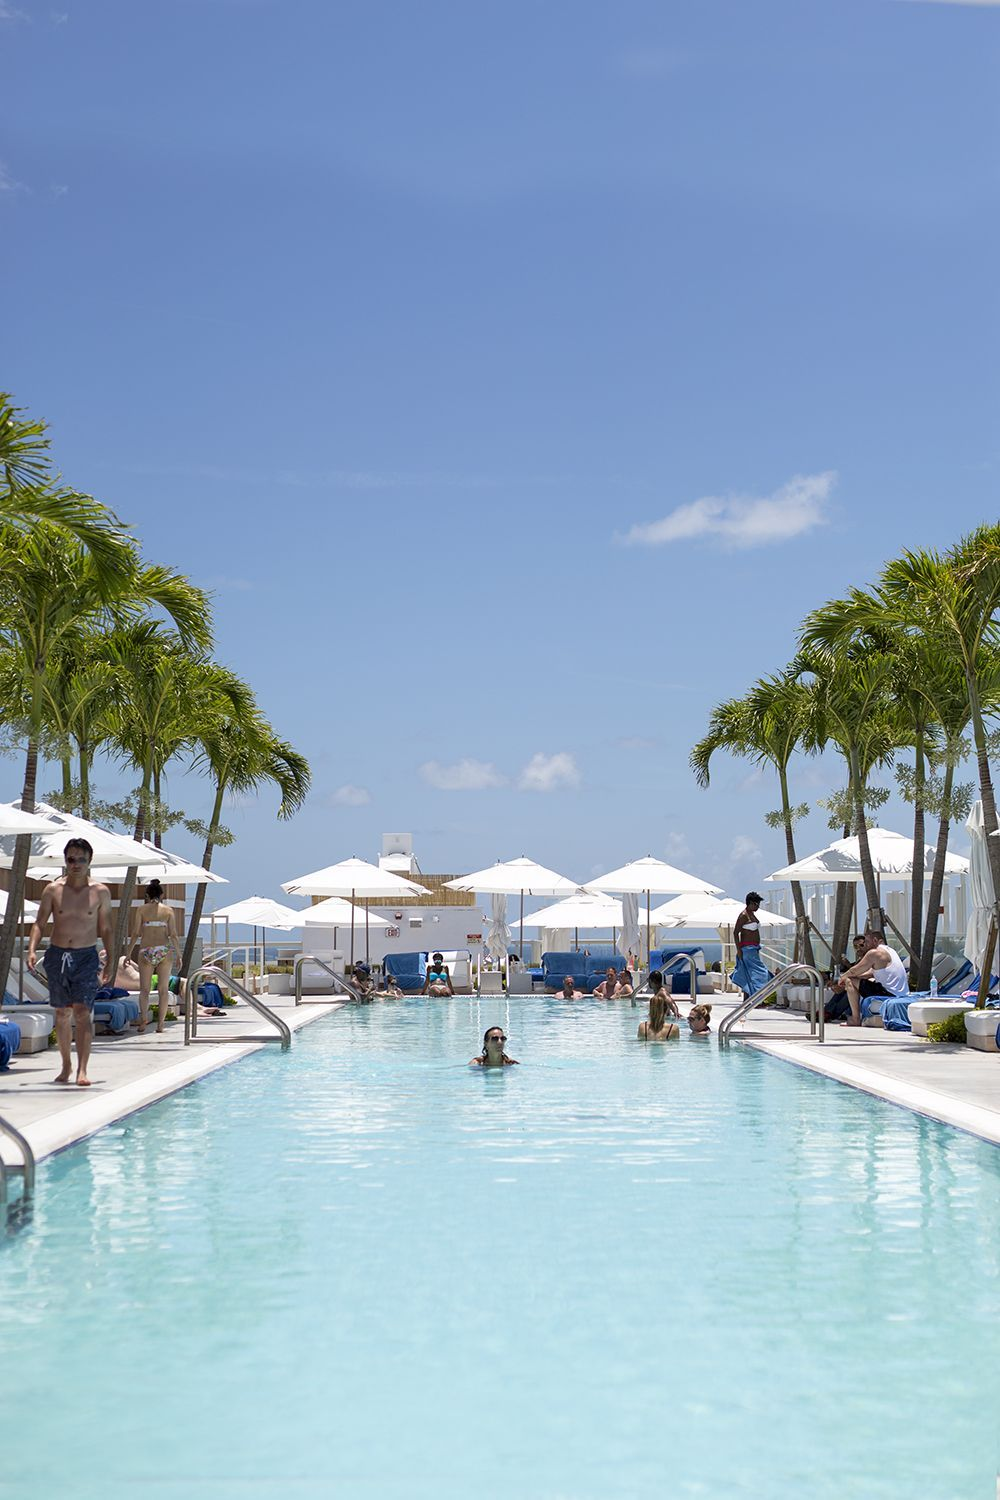 17 Best Things To Do In Miami Updated 2020 South Beach Hotels Beach Hotels Miami Beach Hotels